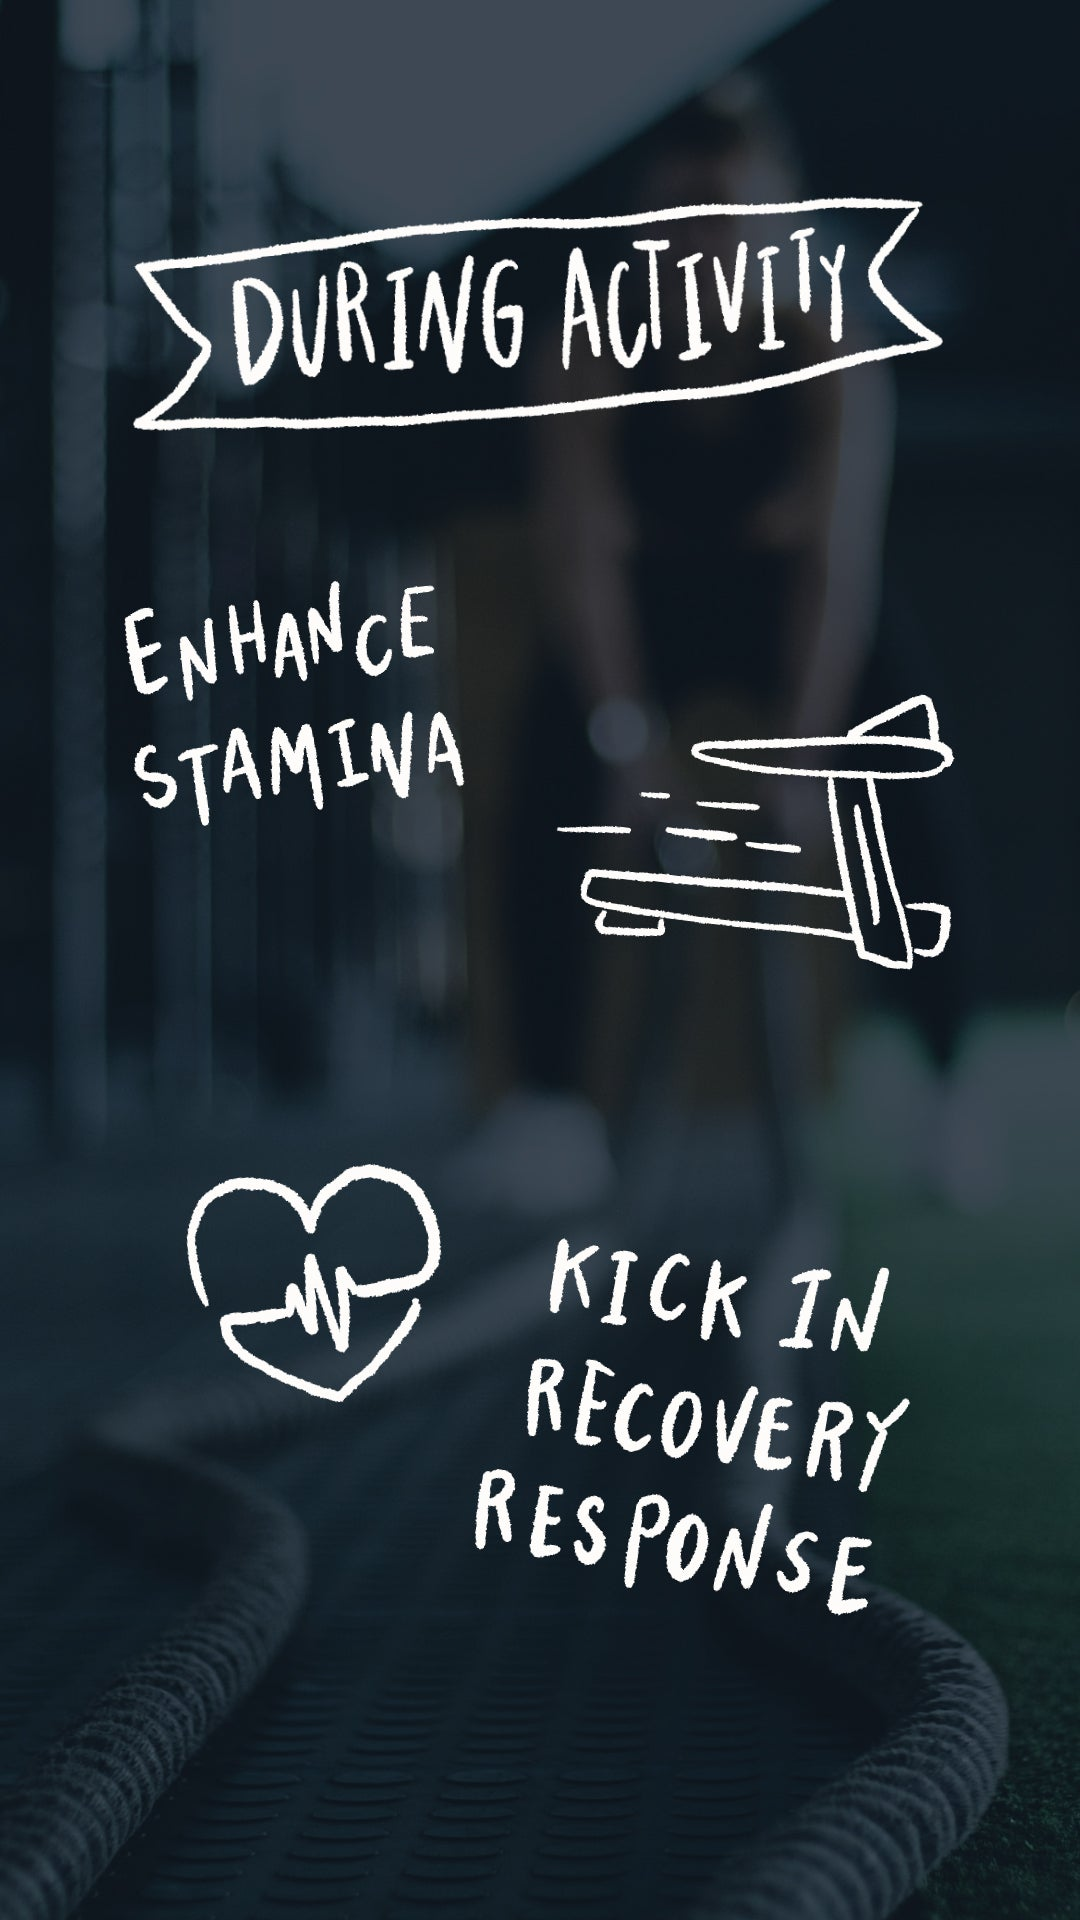 During activity: enhance stamina and kick in recovery response